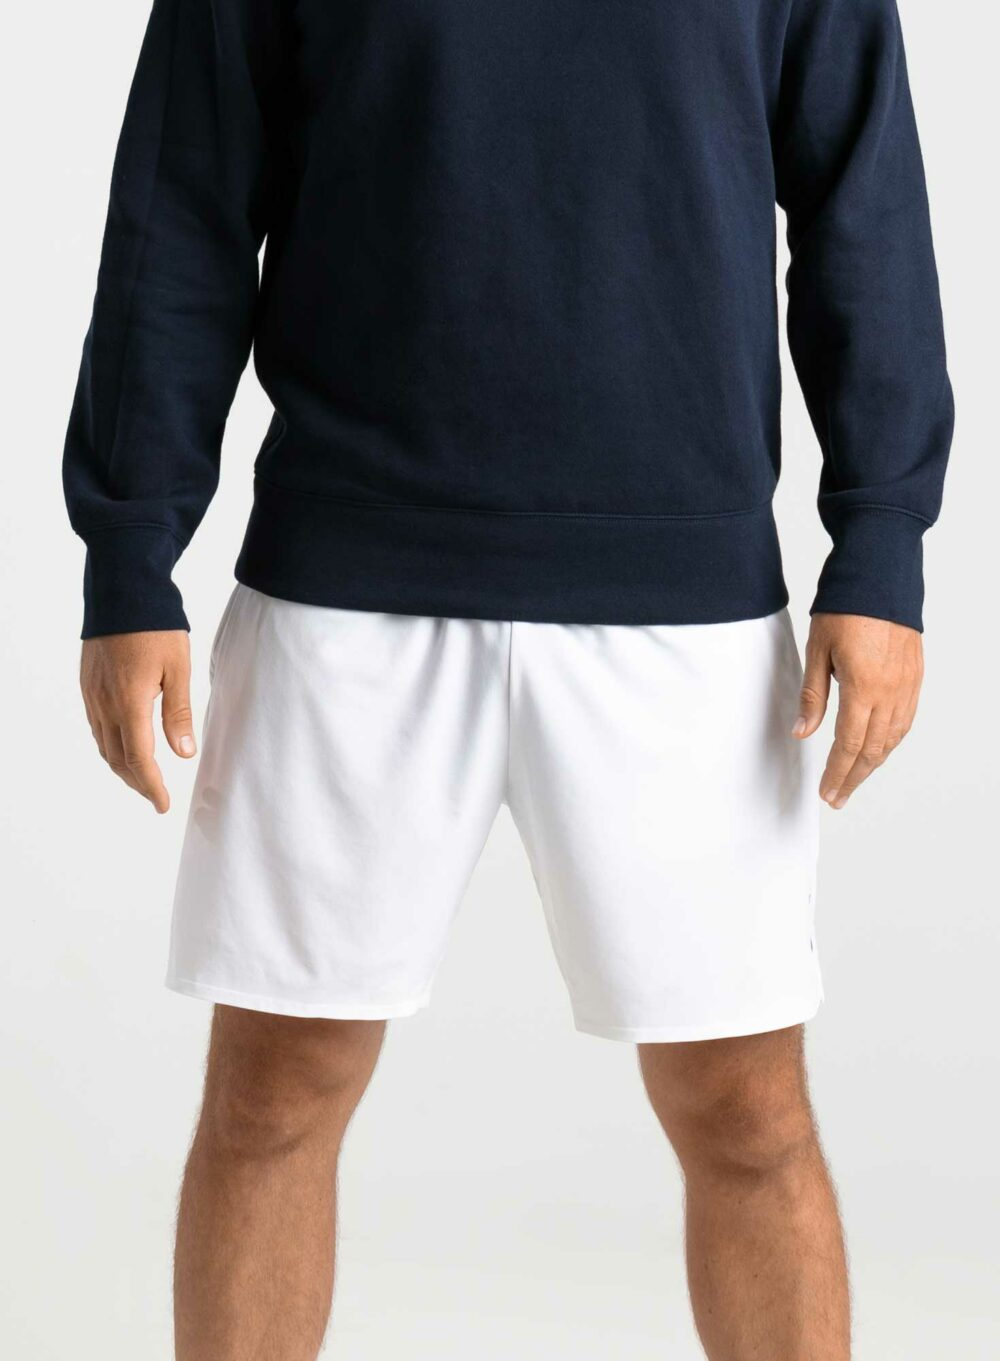 rs_performance_shorts_white_11